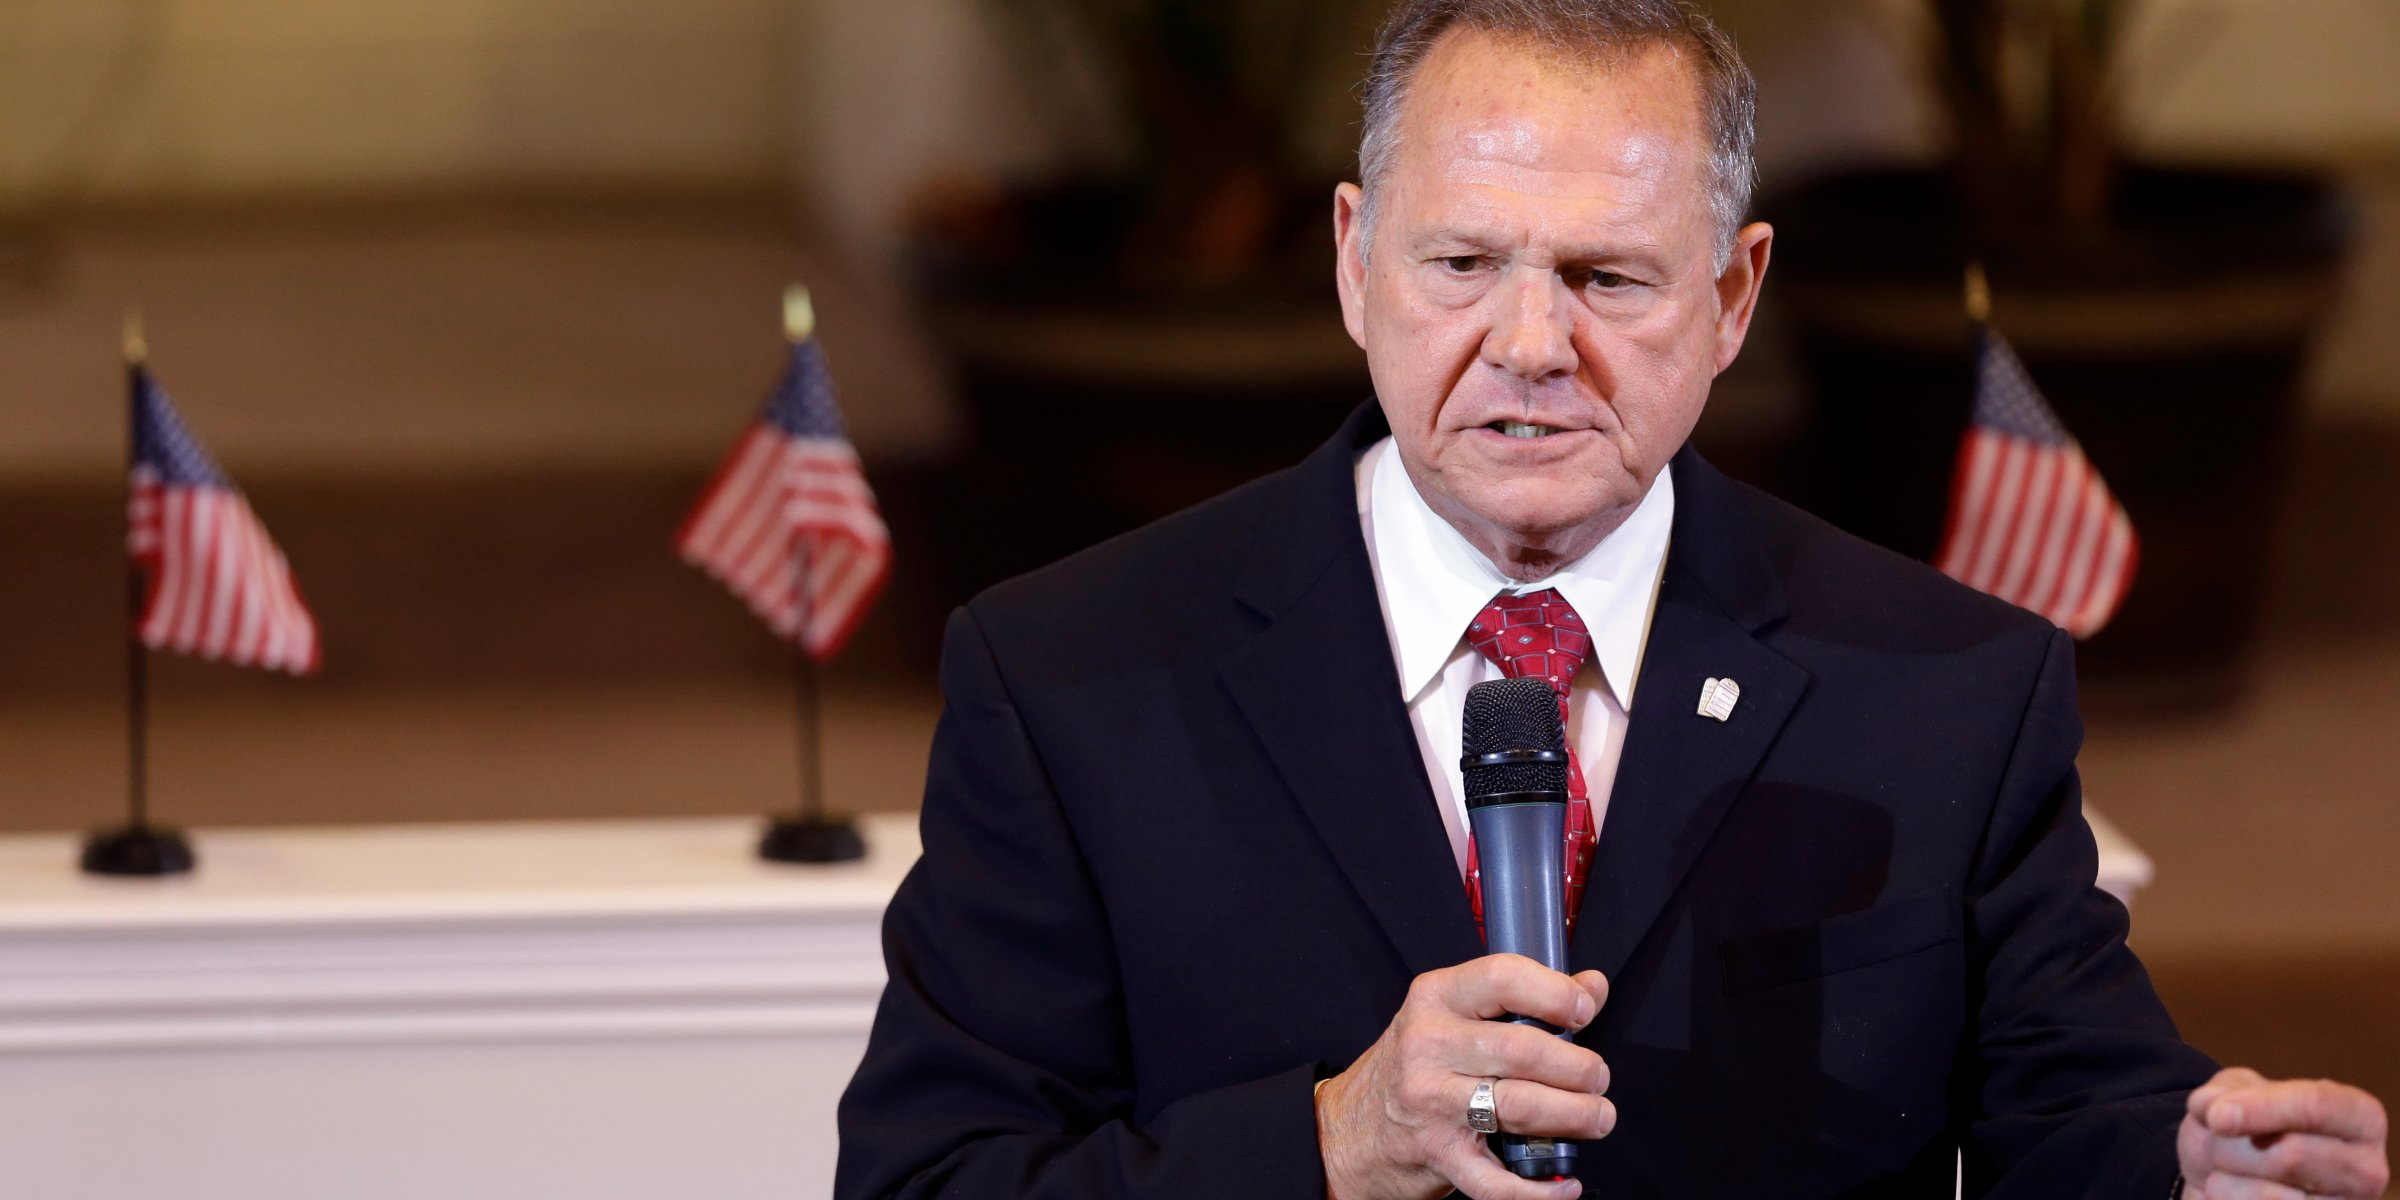 Alabama Senate GOP Nominee Roy Moore Tweets He's Fighting The 'Forces Of Evil'